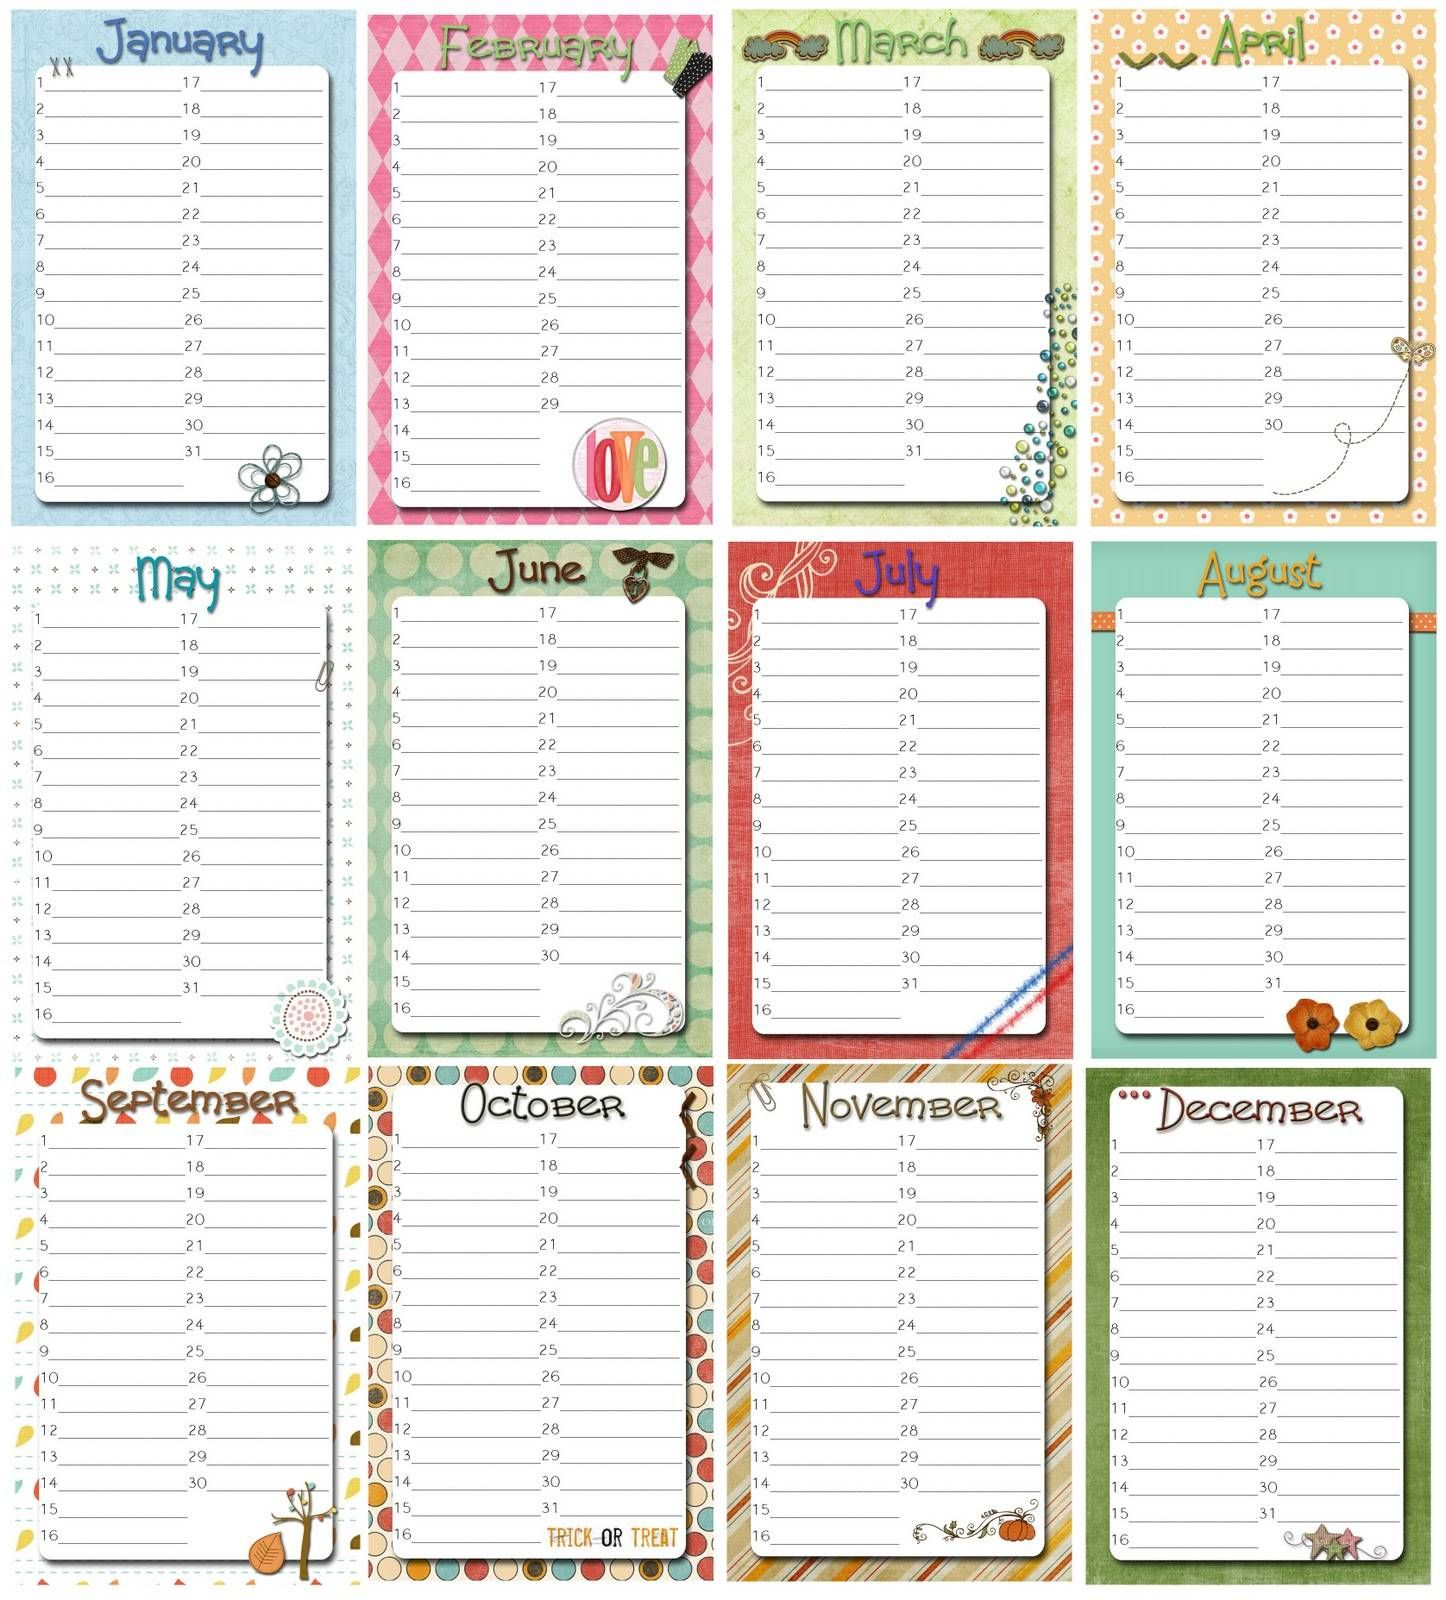 Free Perpetual Calendar Template | Posts Related To Perpetual inside Blank Monthly Birthday Calendars